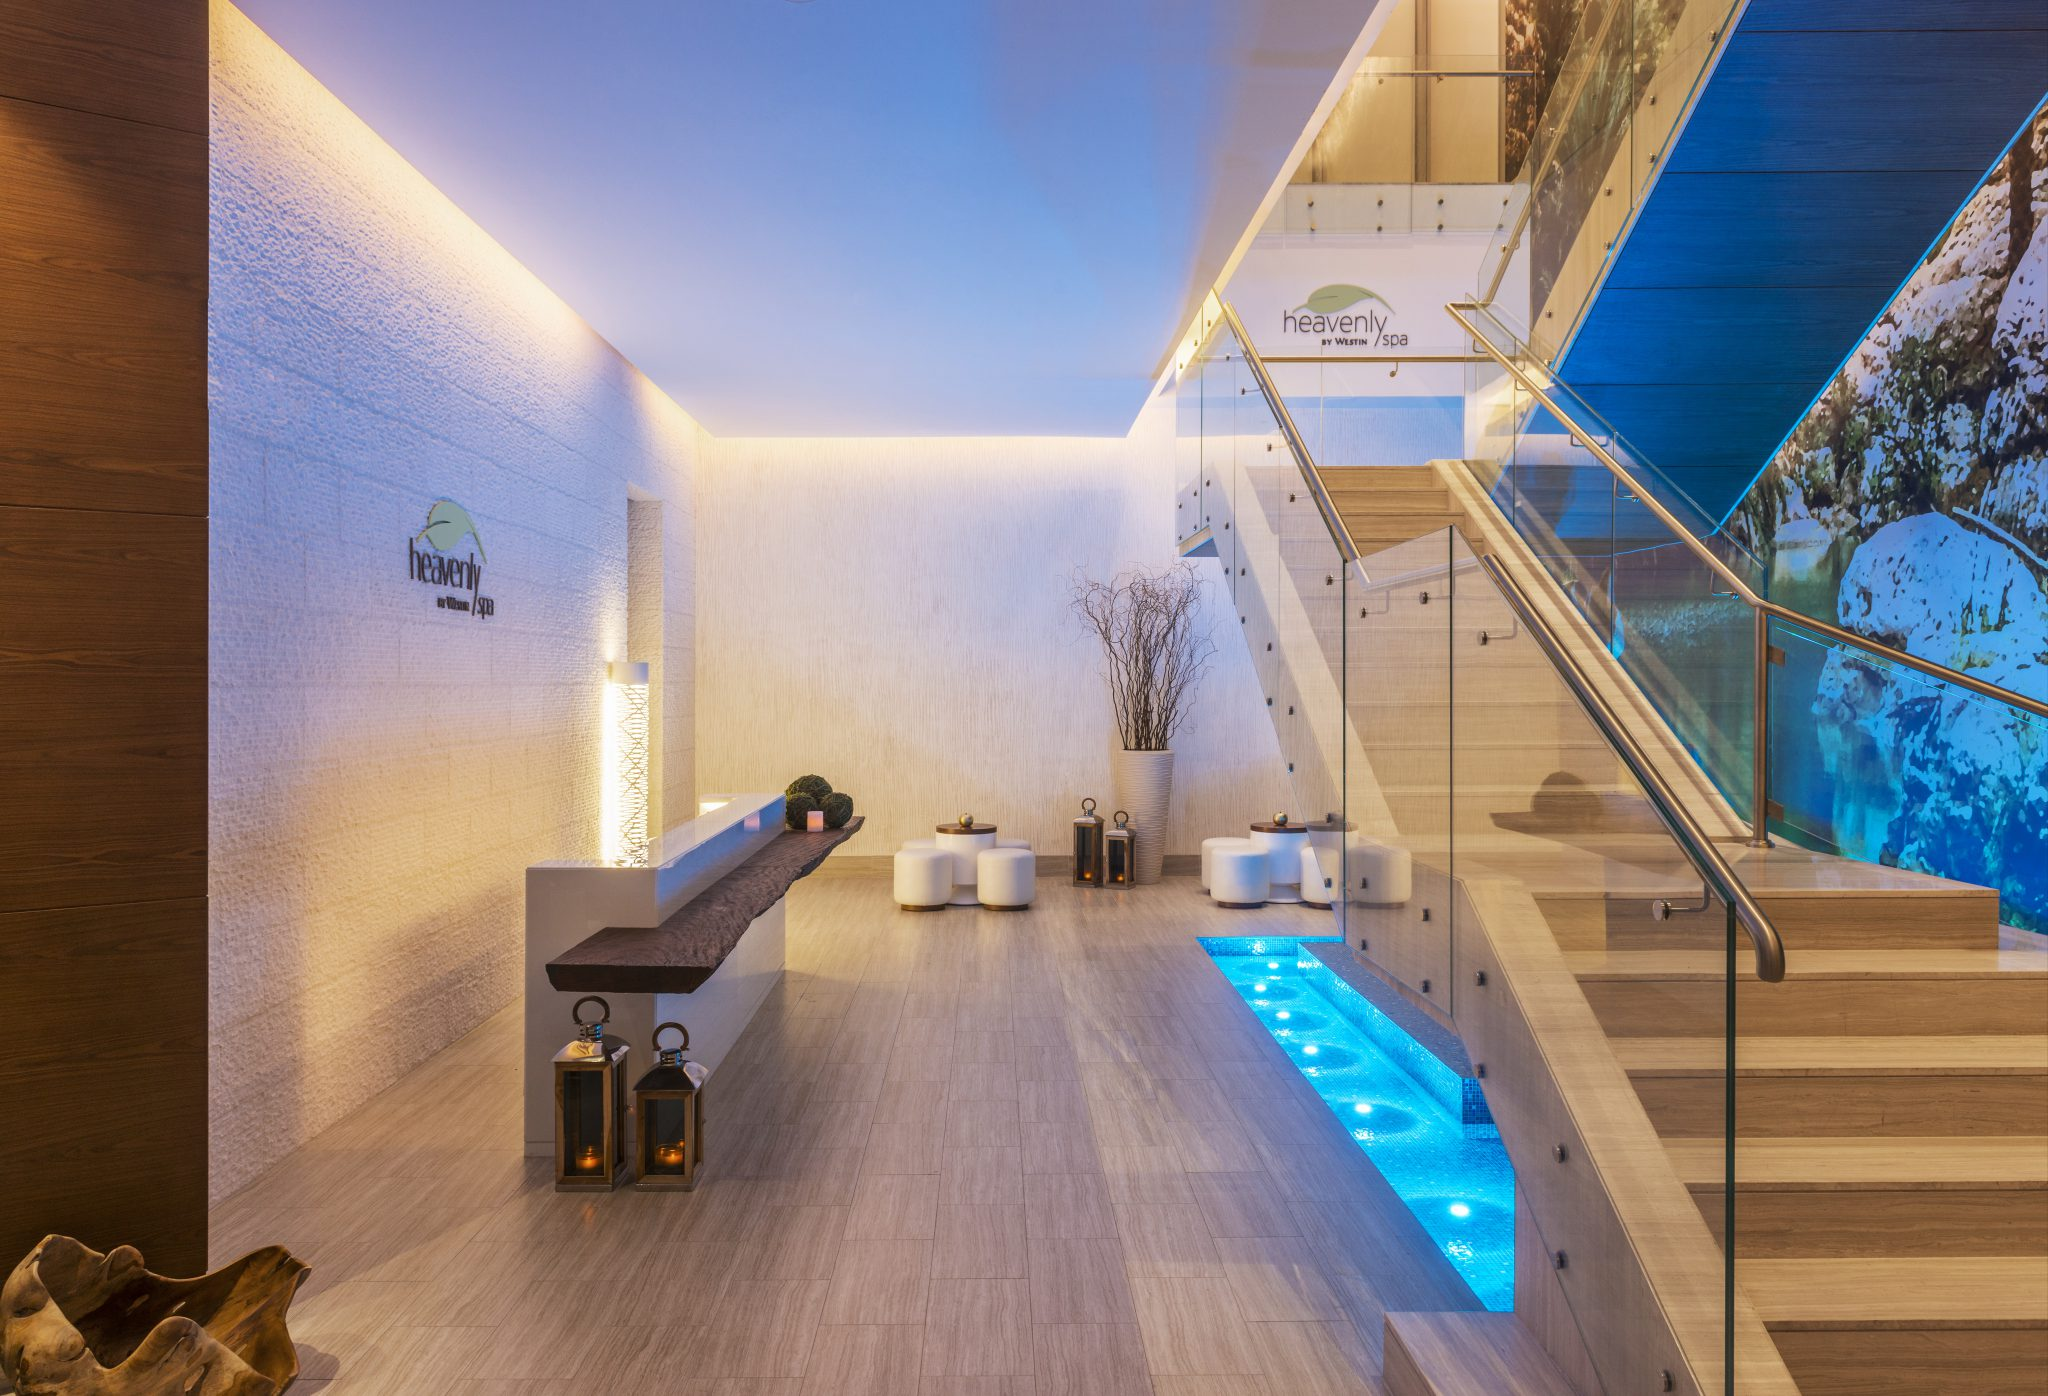 The Heavenly Spa. 7